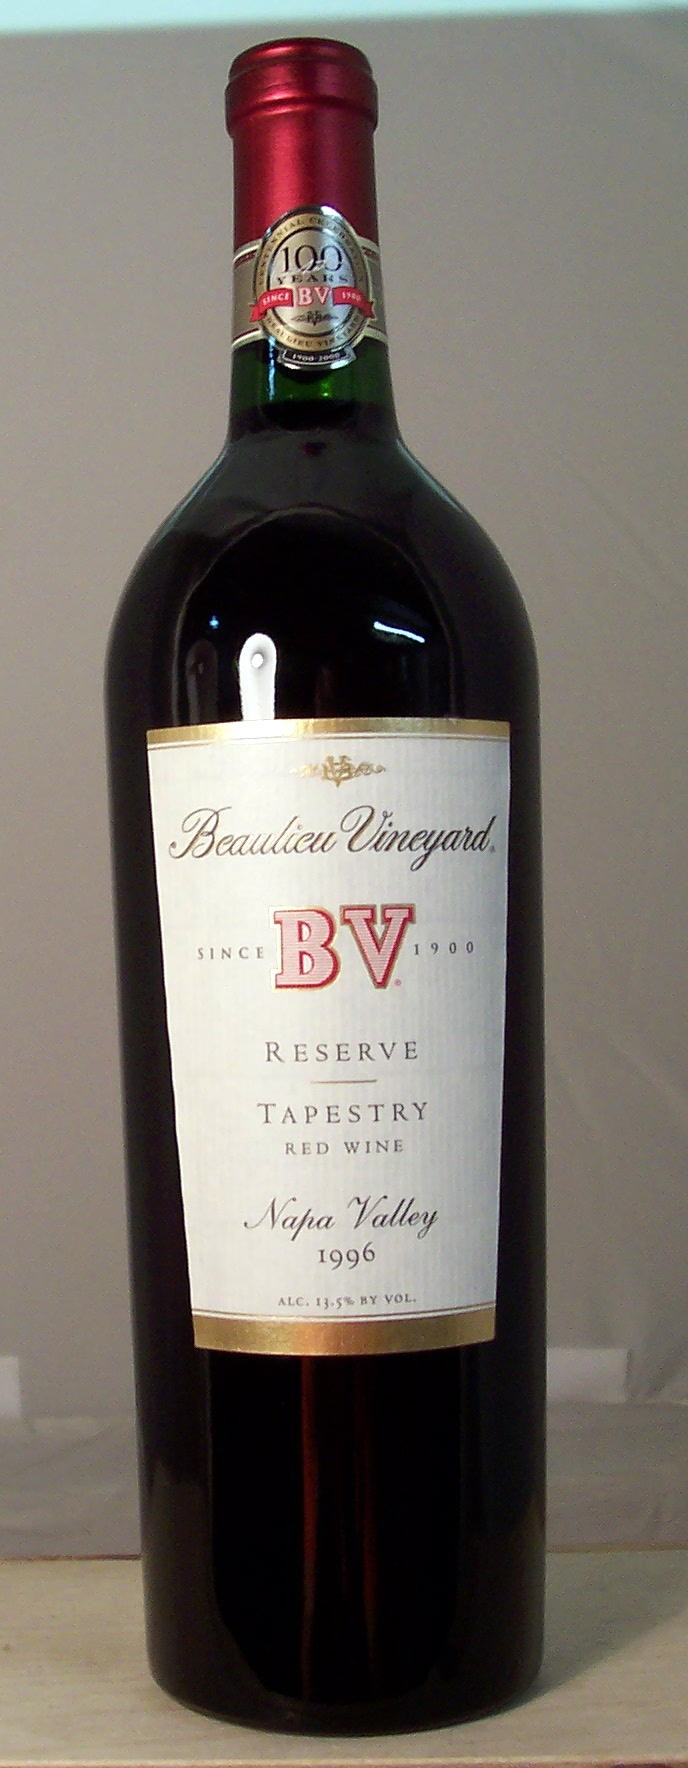 Tapestry Reserve Tapestry Reserve Red Wine